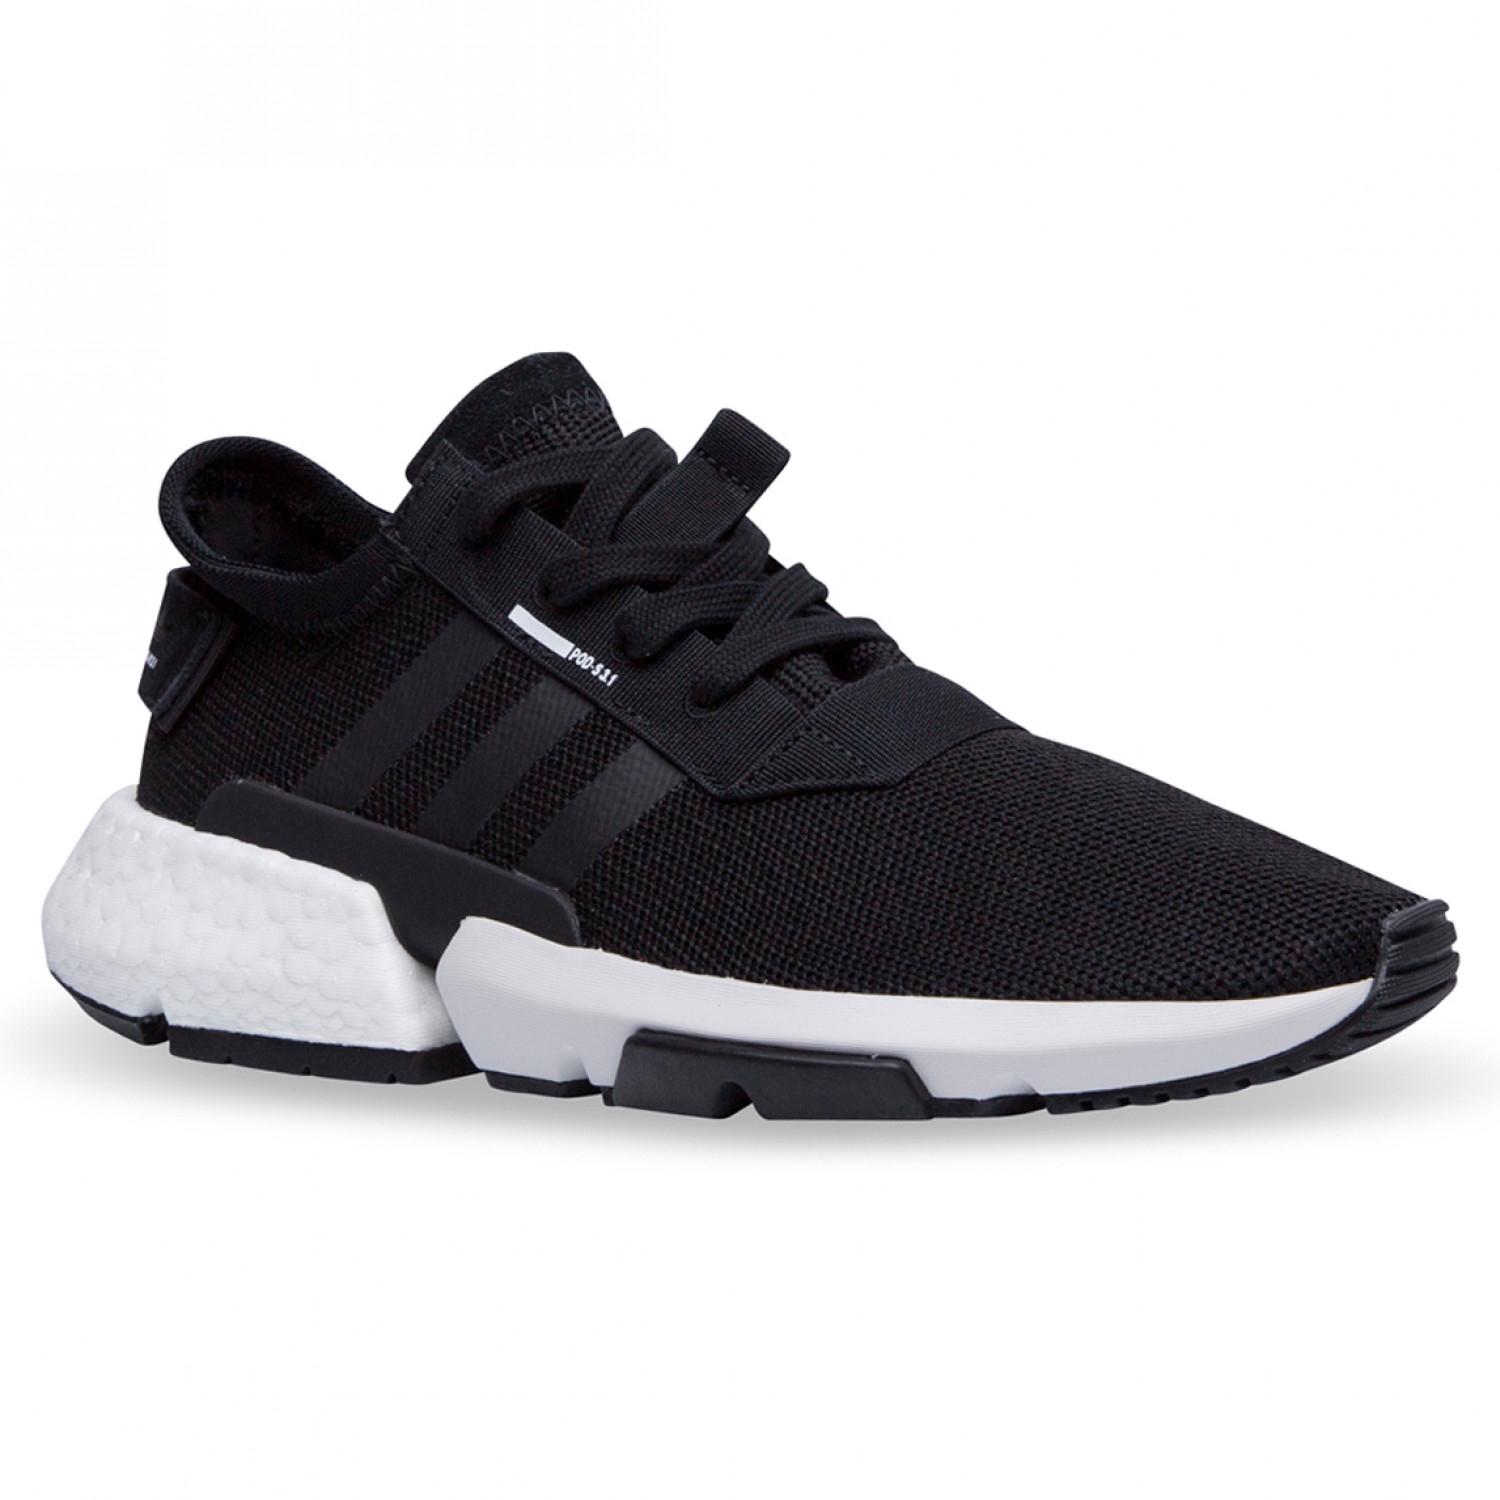 Adidas Shoes Black : Adidas Shoes | Find our Latest Moden